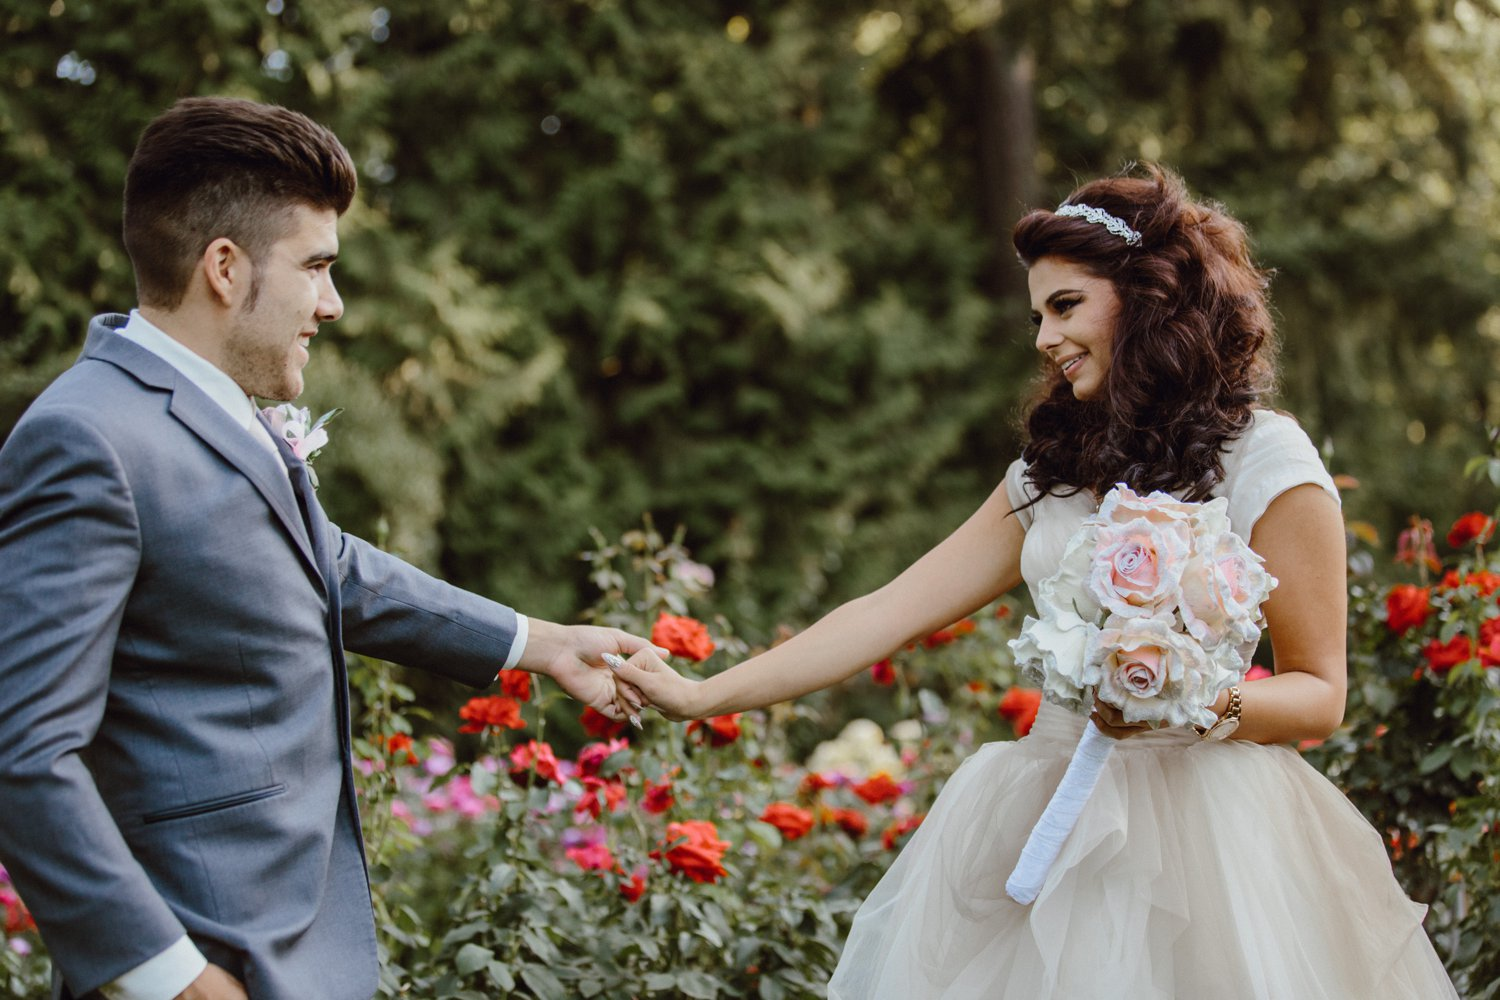 A bride and groom see each other for the first time